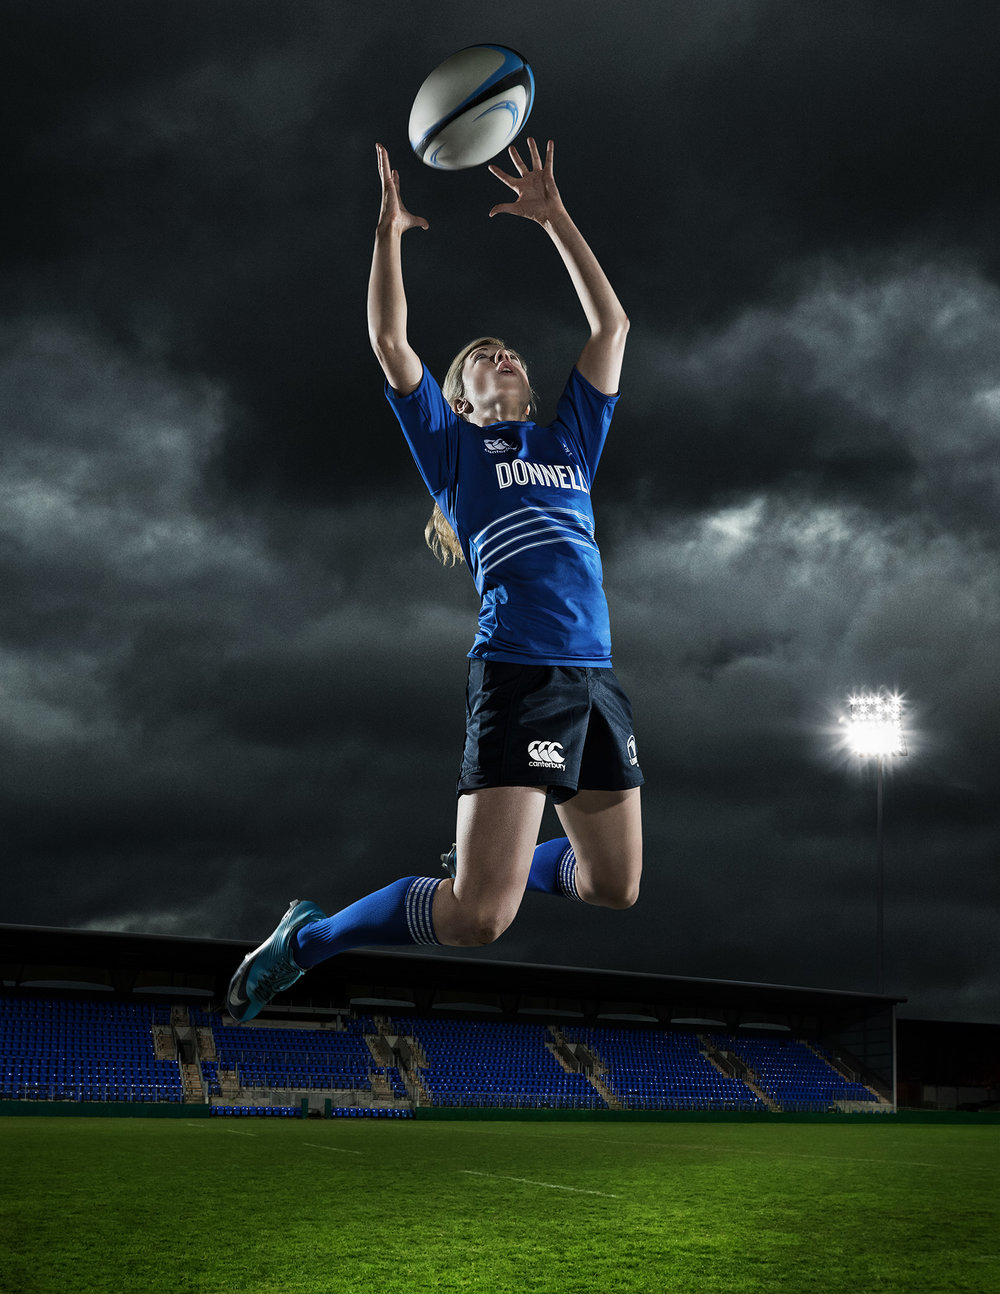 Leinster Women's Rugby